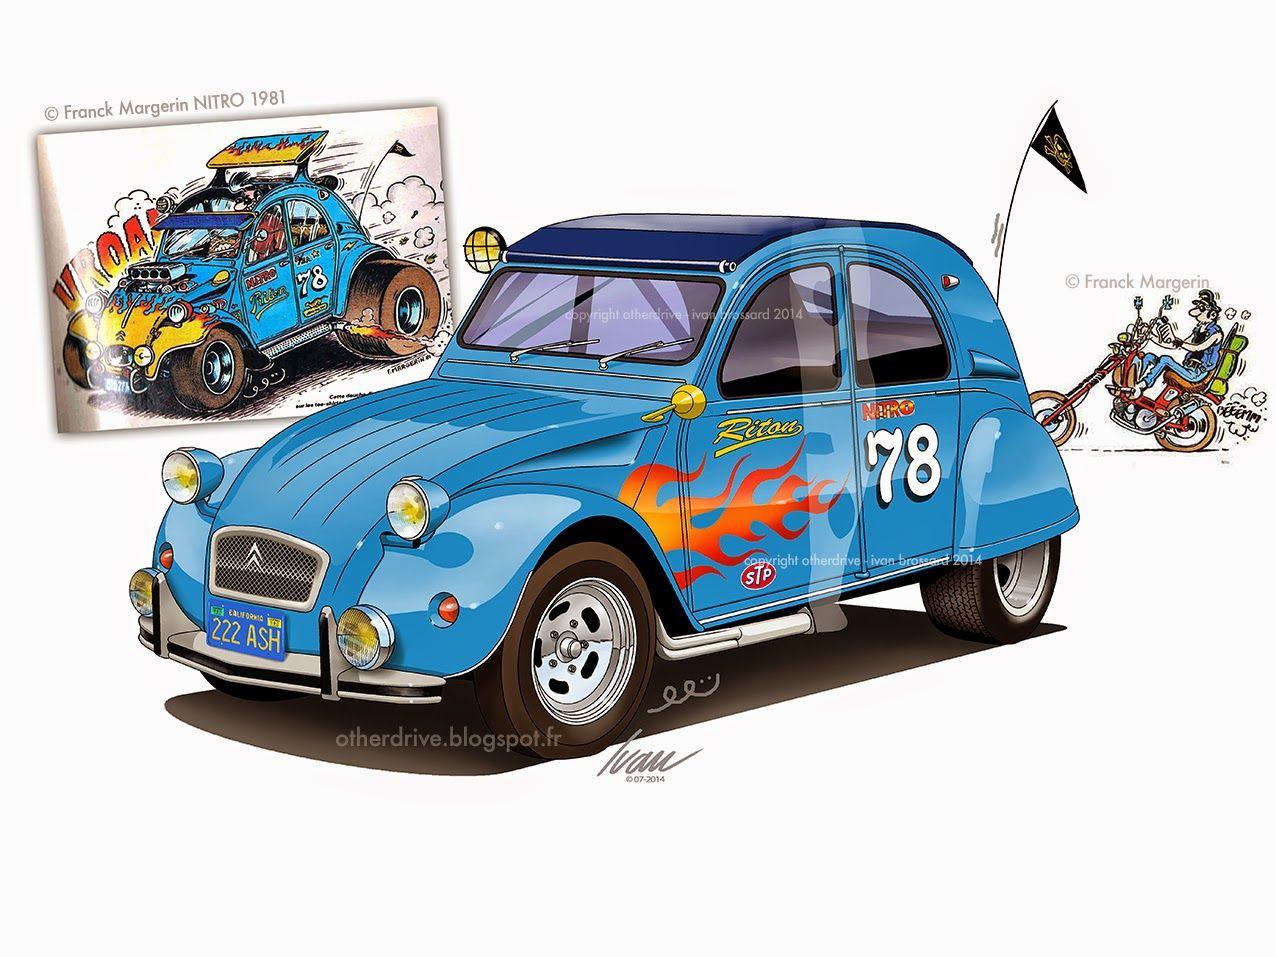 citro u00ebn 2cv tribute to margerin